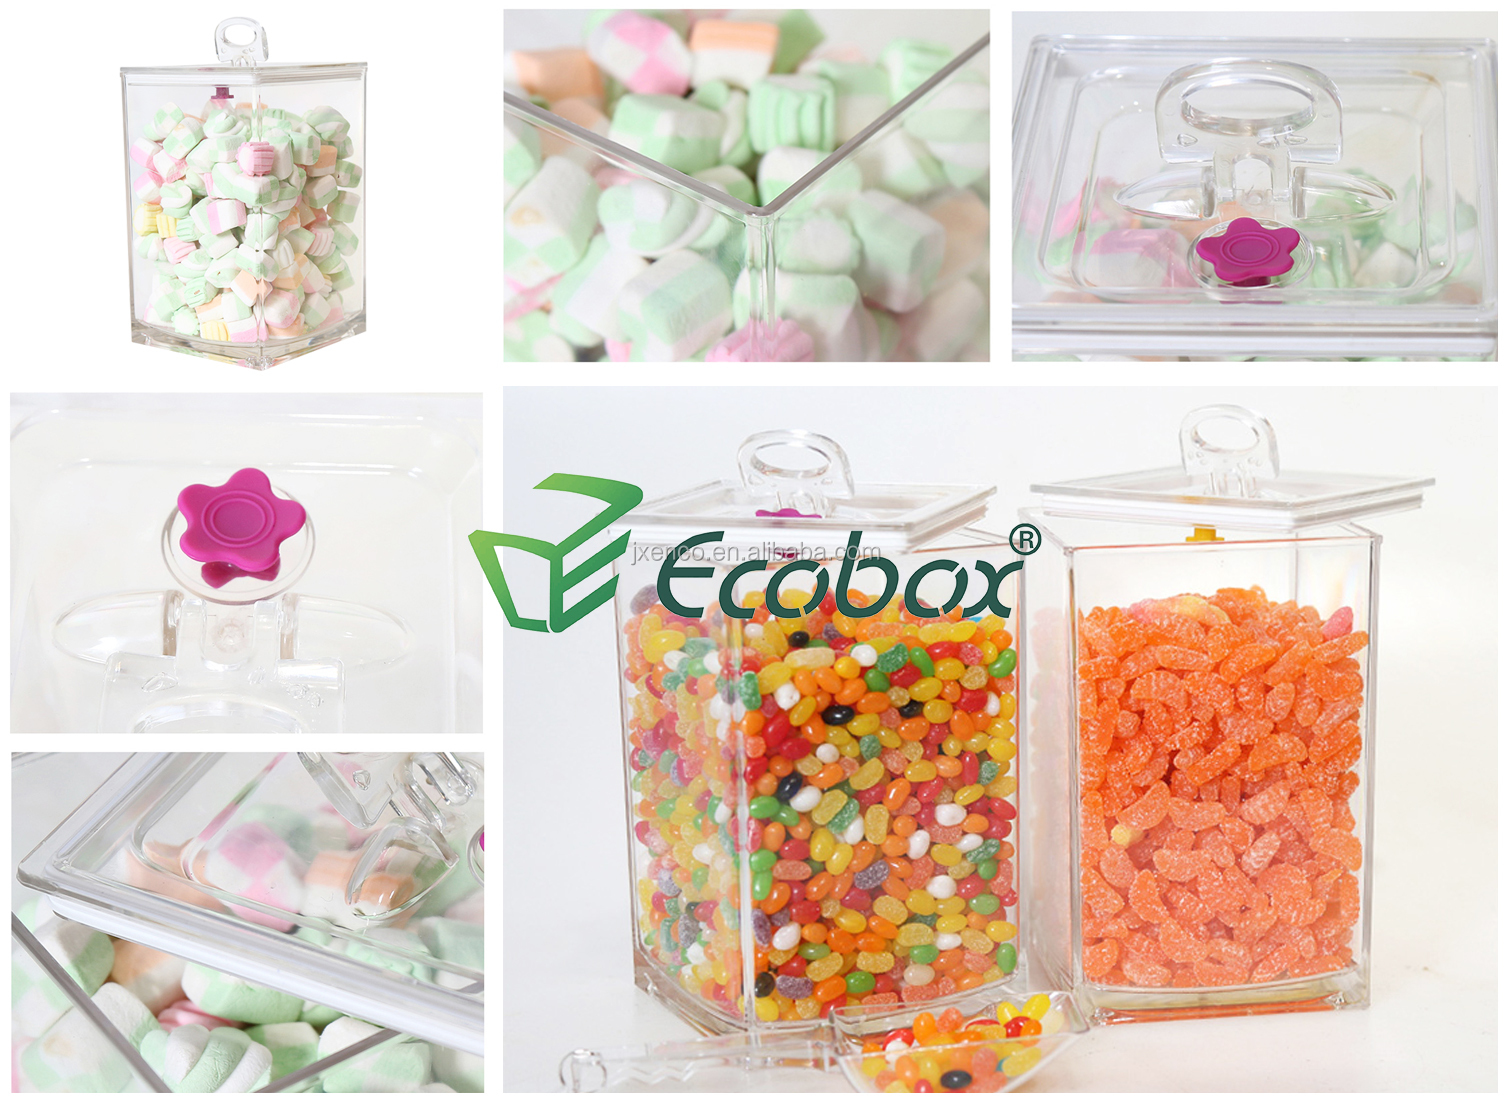 Ecobox supermarket and retail store Transparent plastic bulk food  bins dry food cereal coffee beans candy bin